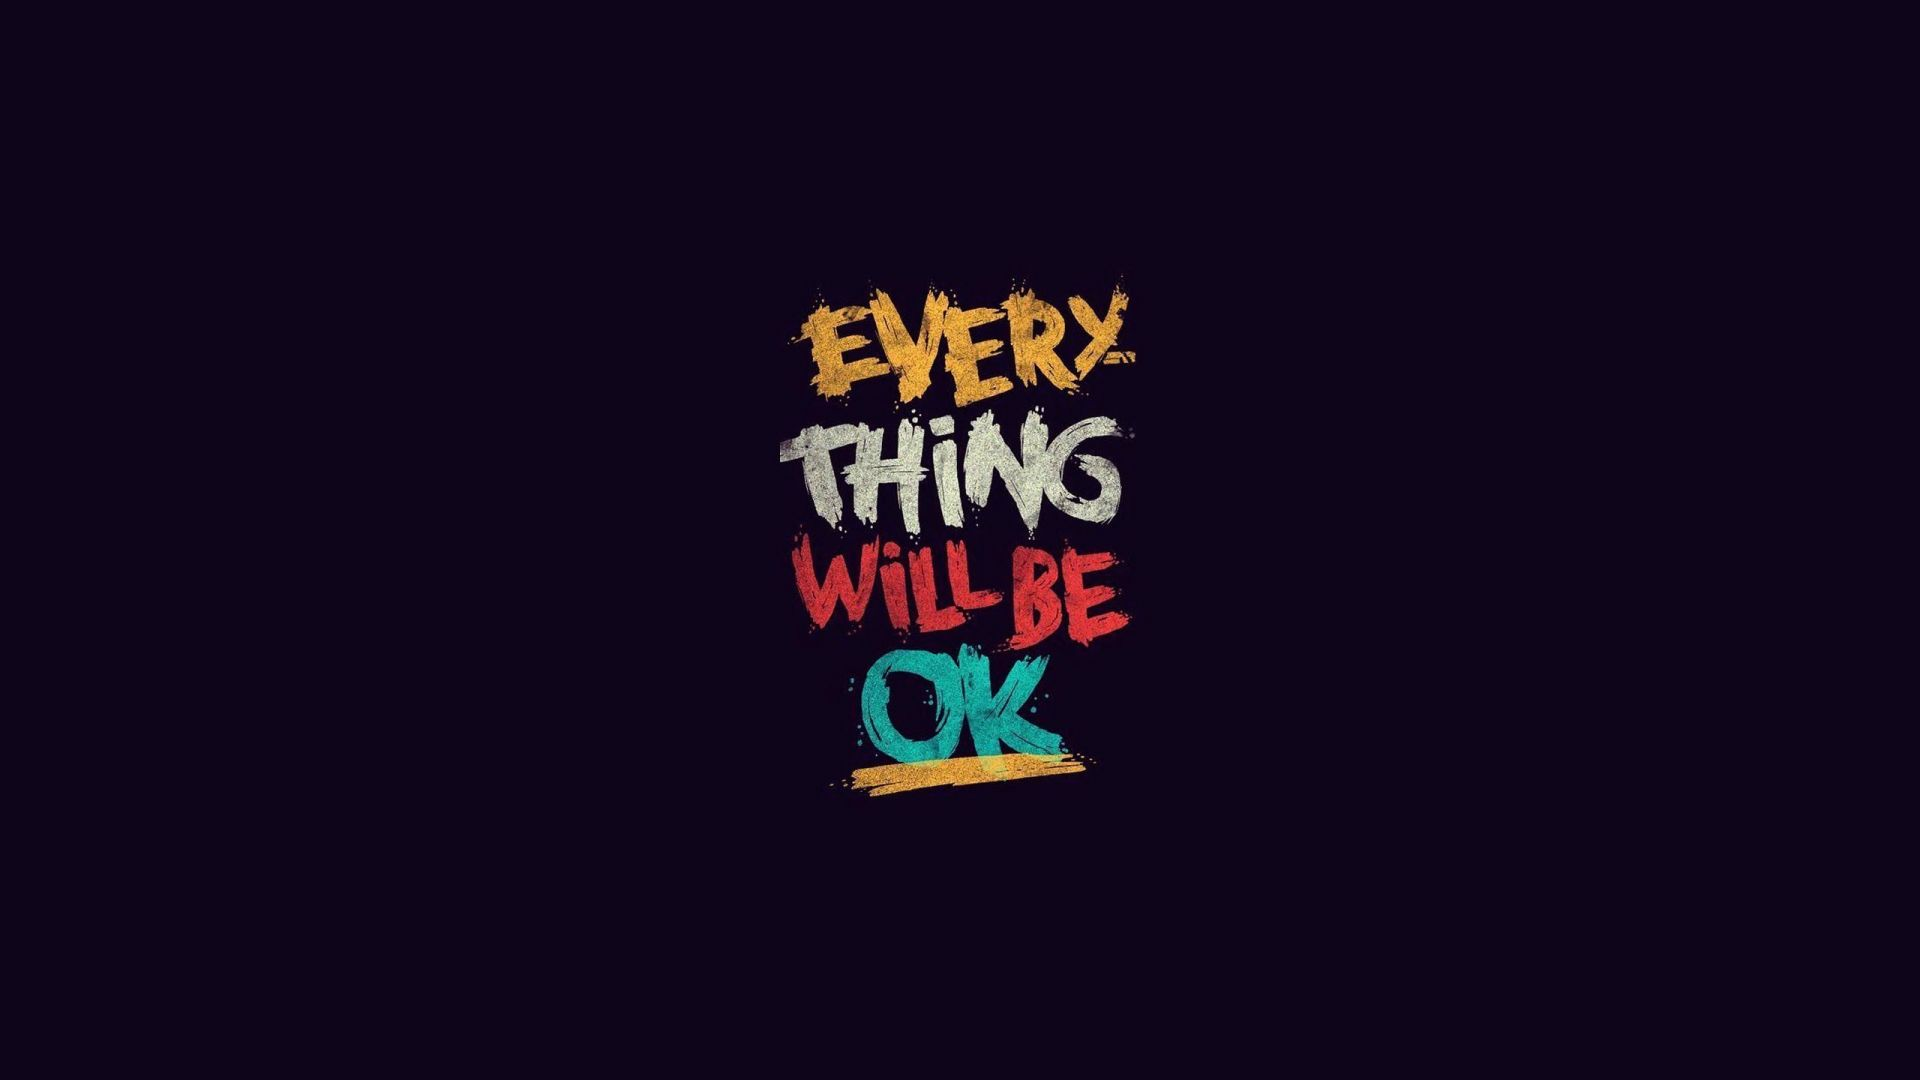 Wallpaper Everything will be ok, quote, typography